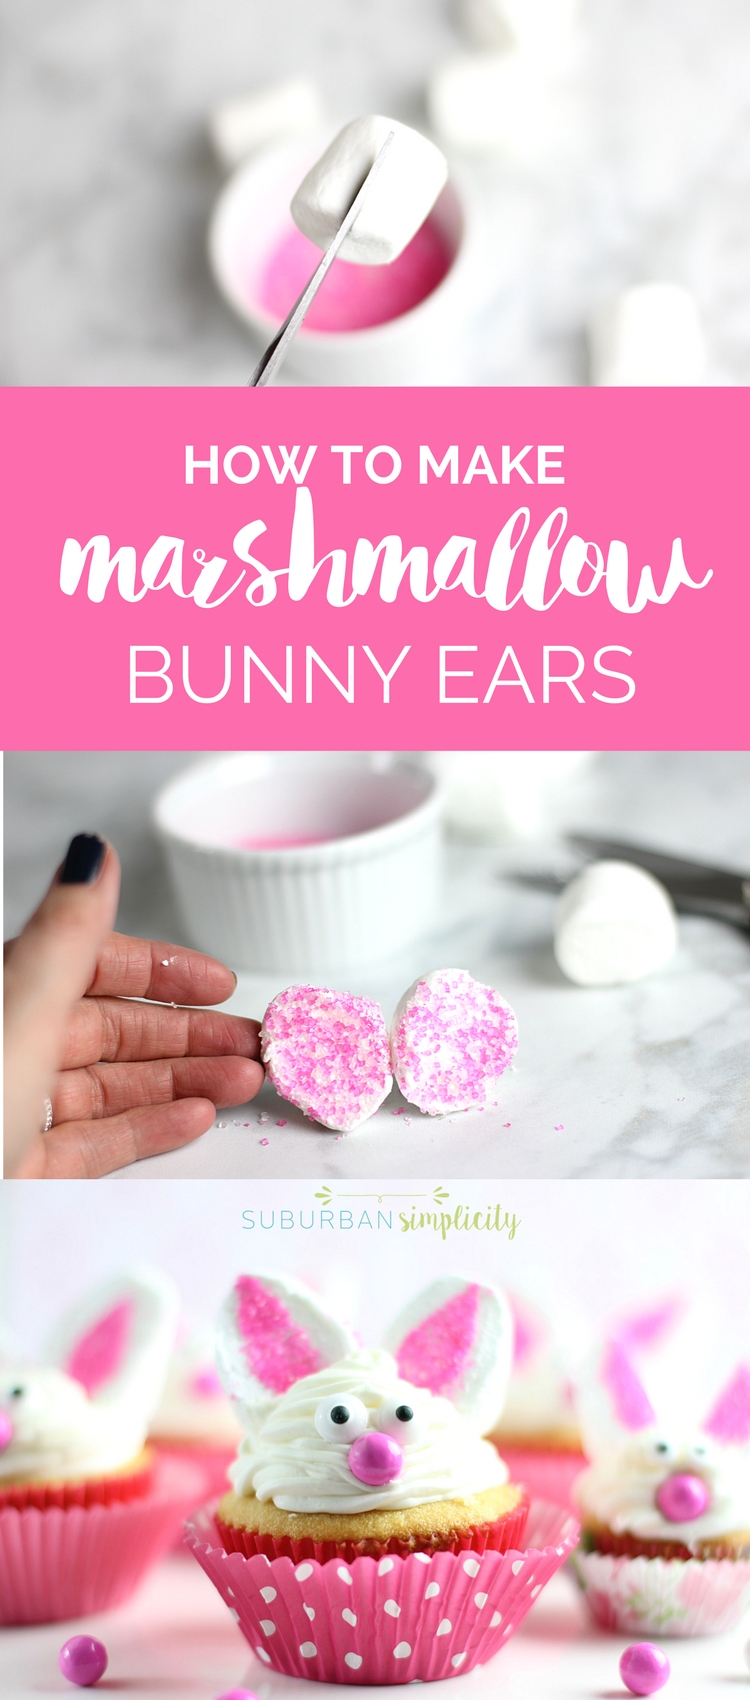 This totally simple scissor trick will give you the cutest marshmallow bunny ears in a flash! Decorate all your spring treats and bunny cupcakes with this easy DIY idea. #easter #bunnycupcakes #marshmallowrecipes